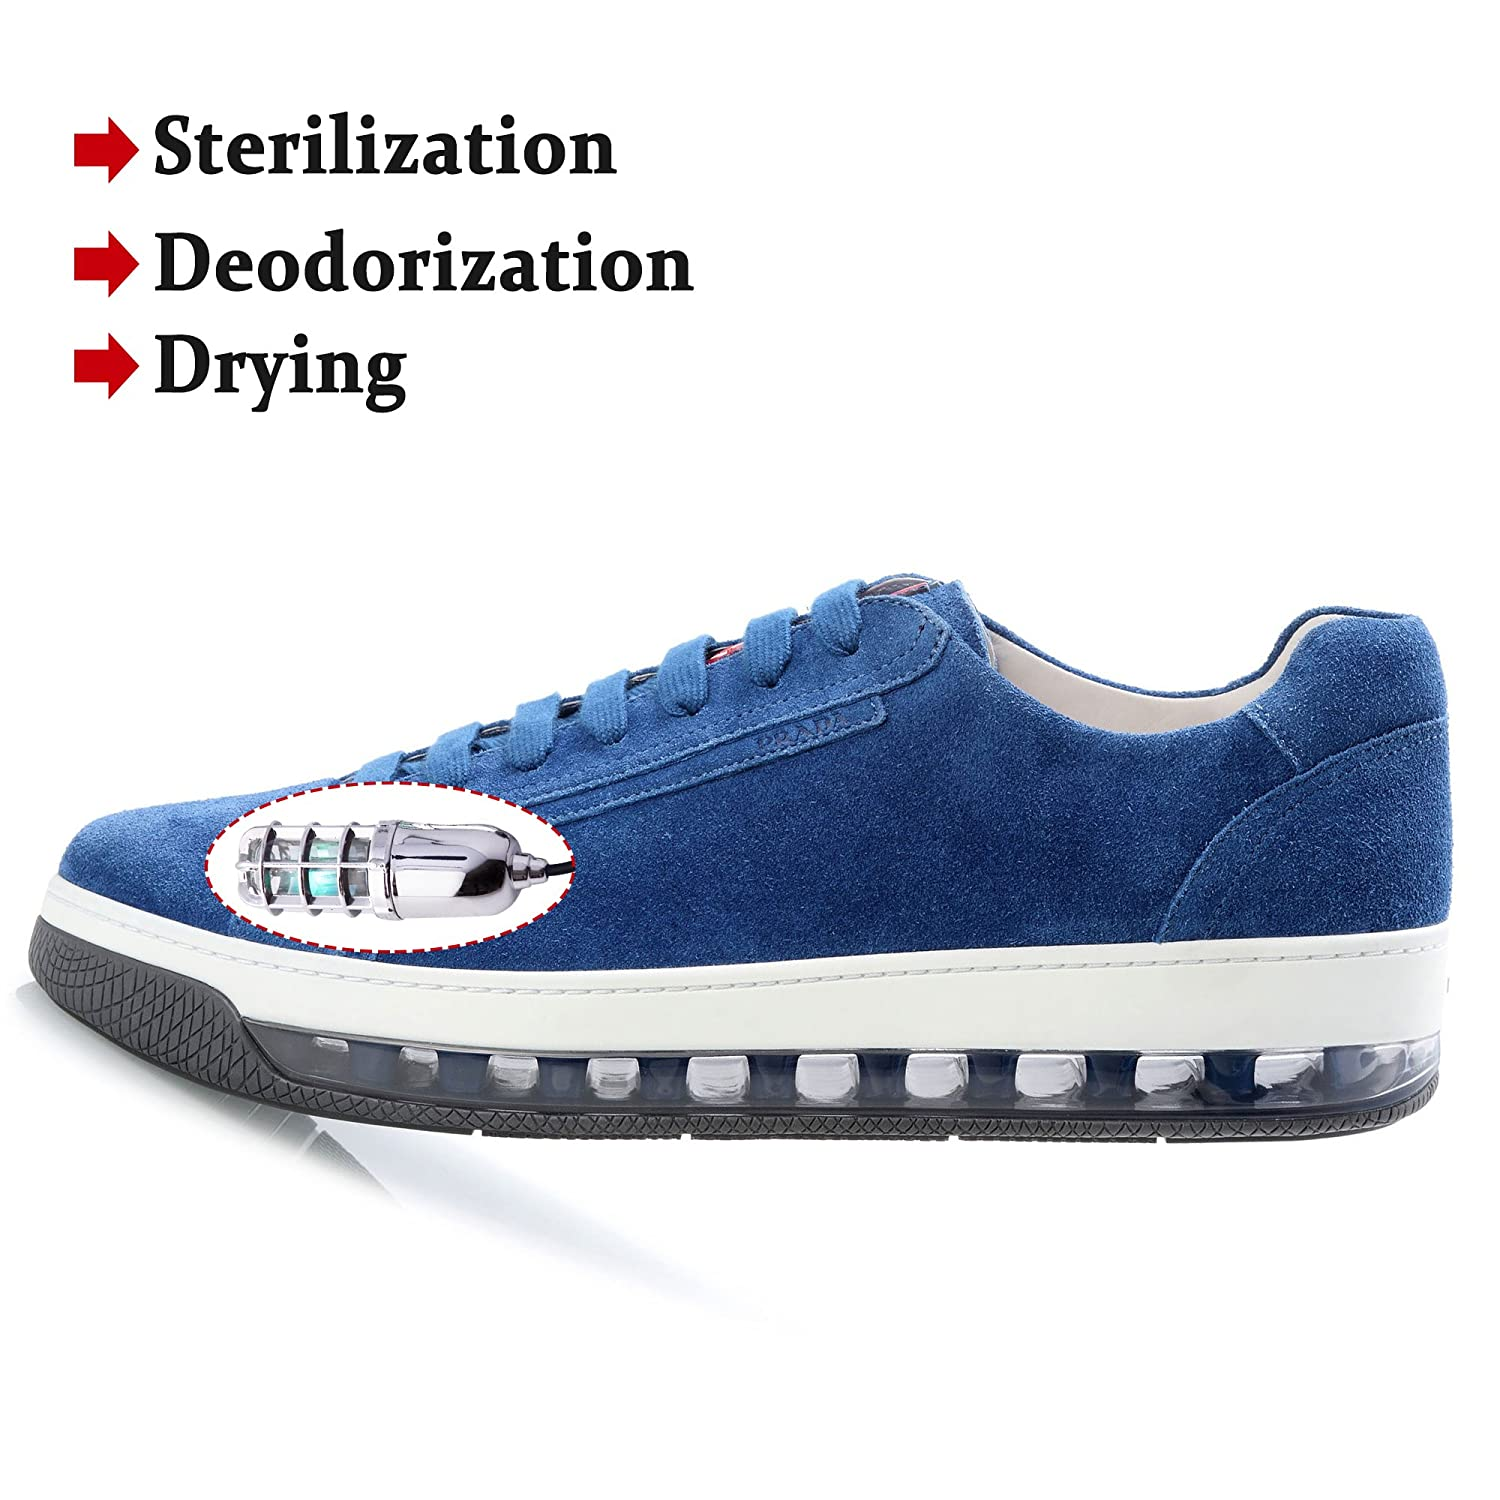 Shoes Deodorization Dryer Uv Lamp Shoe Sterillizer Ultraviolet Smell Remover Shoes Deodorant Dryer 2017 Upgrade Skin Care Tools